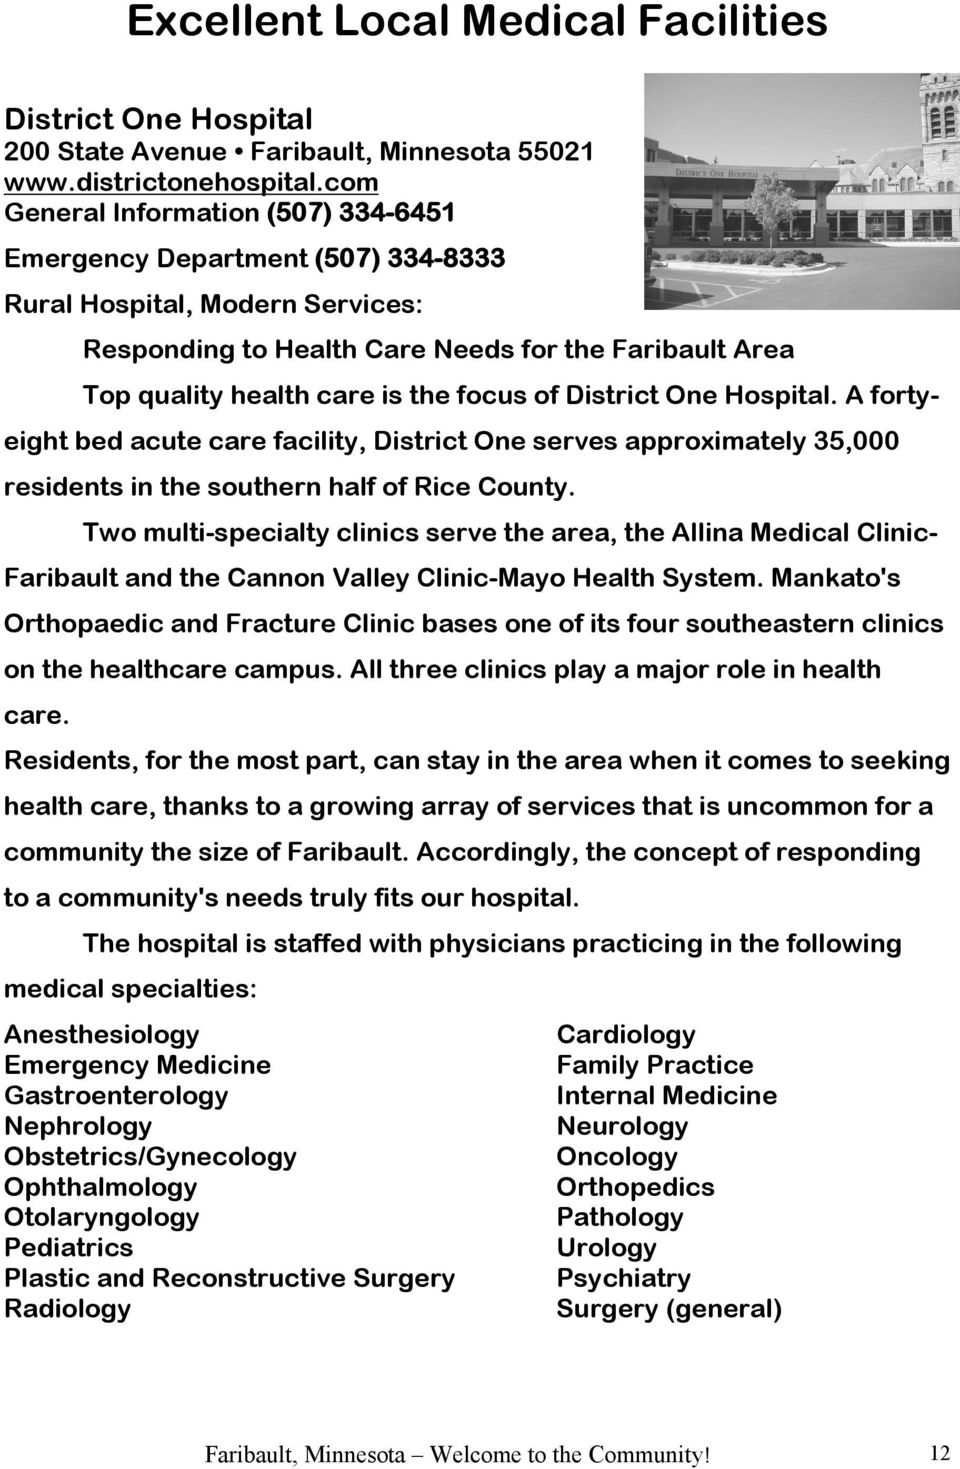 Faribault, Minnesota Information Booklet Welcome to the